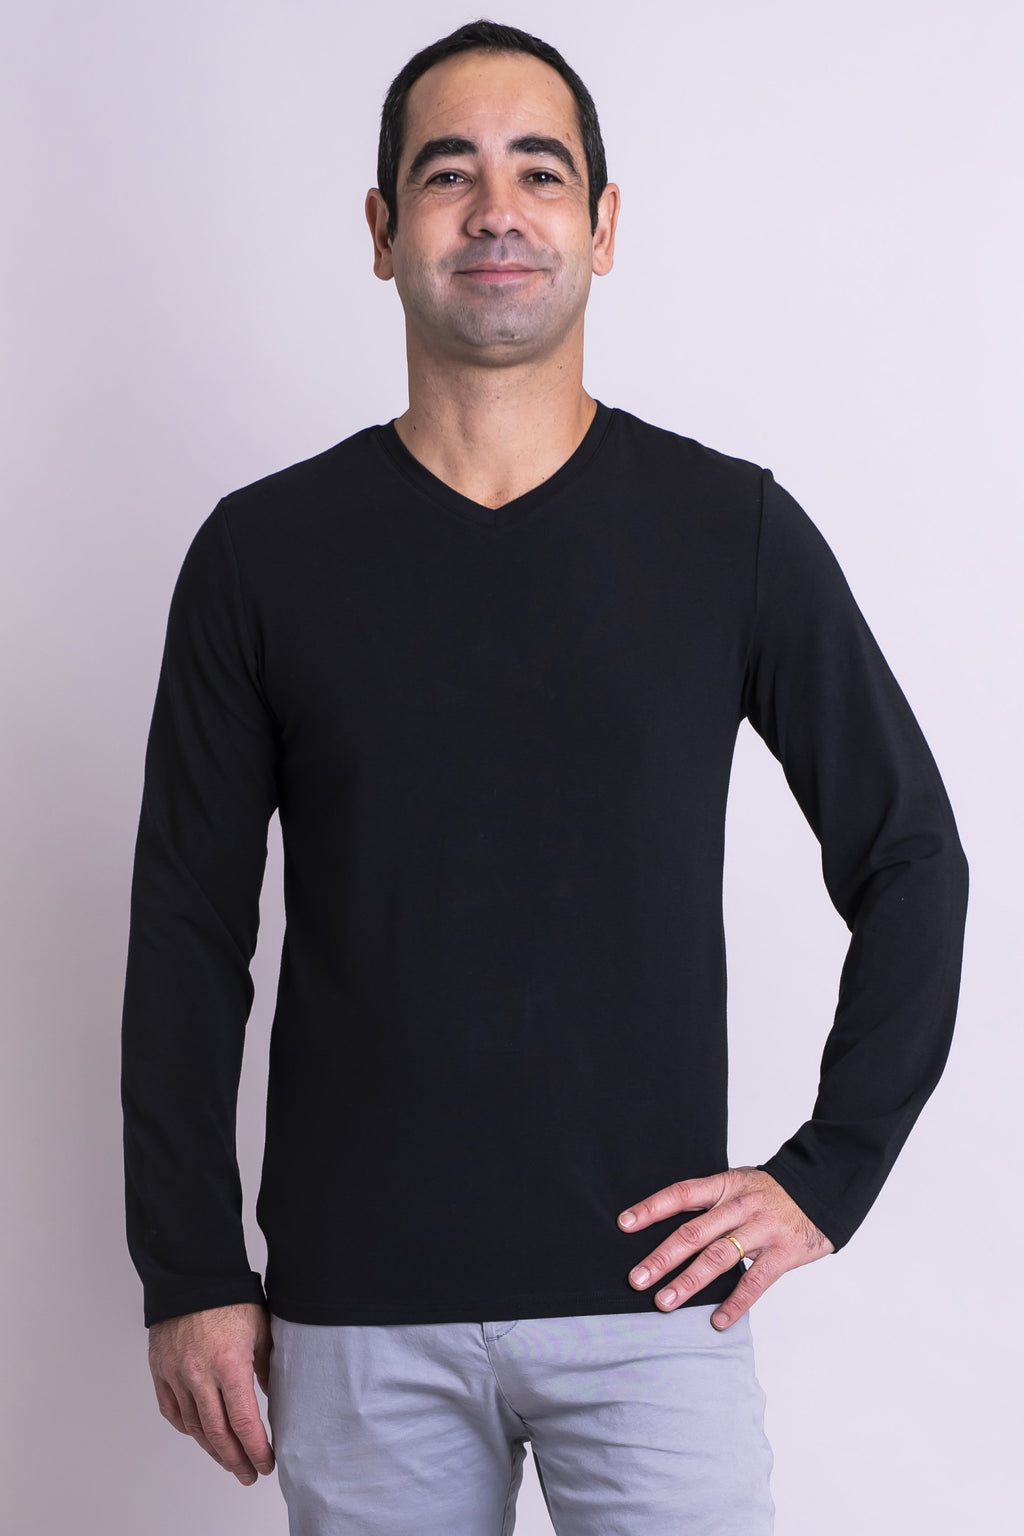 Men's top, long sleeve, black, casual-wear